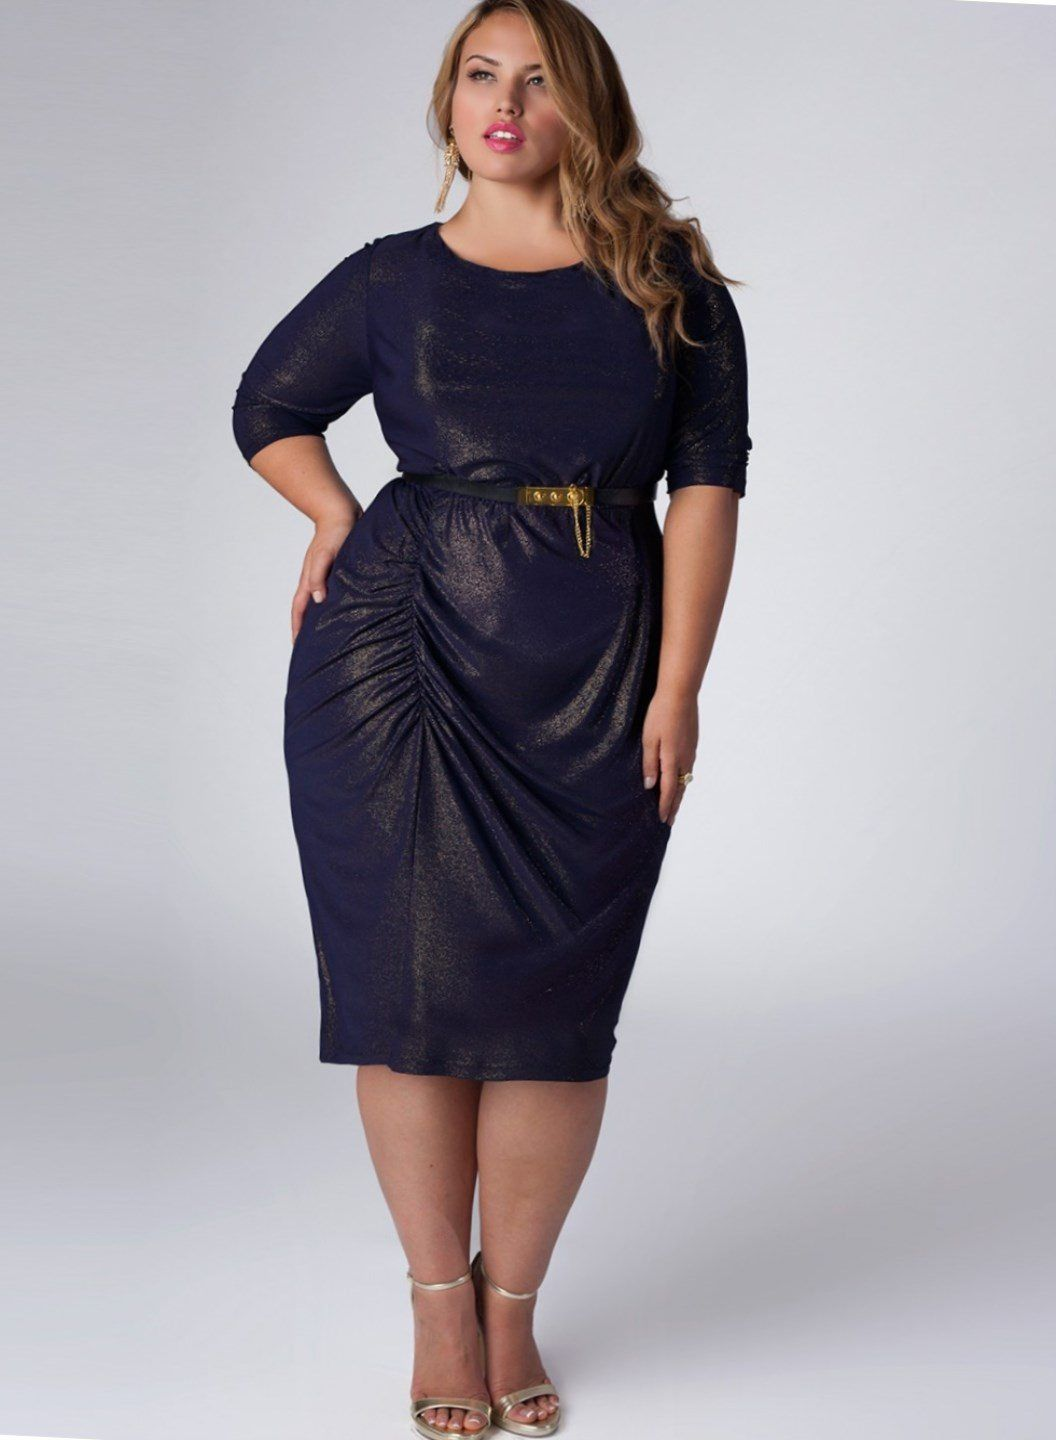 Cheap plus size formal dresses for weddings trendy for Cheap formal dresses for wedding guests